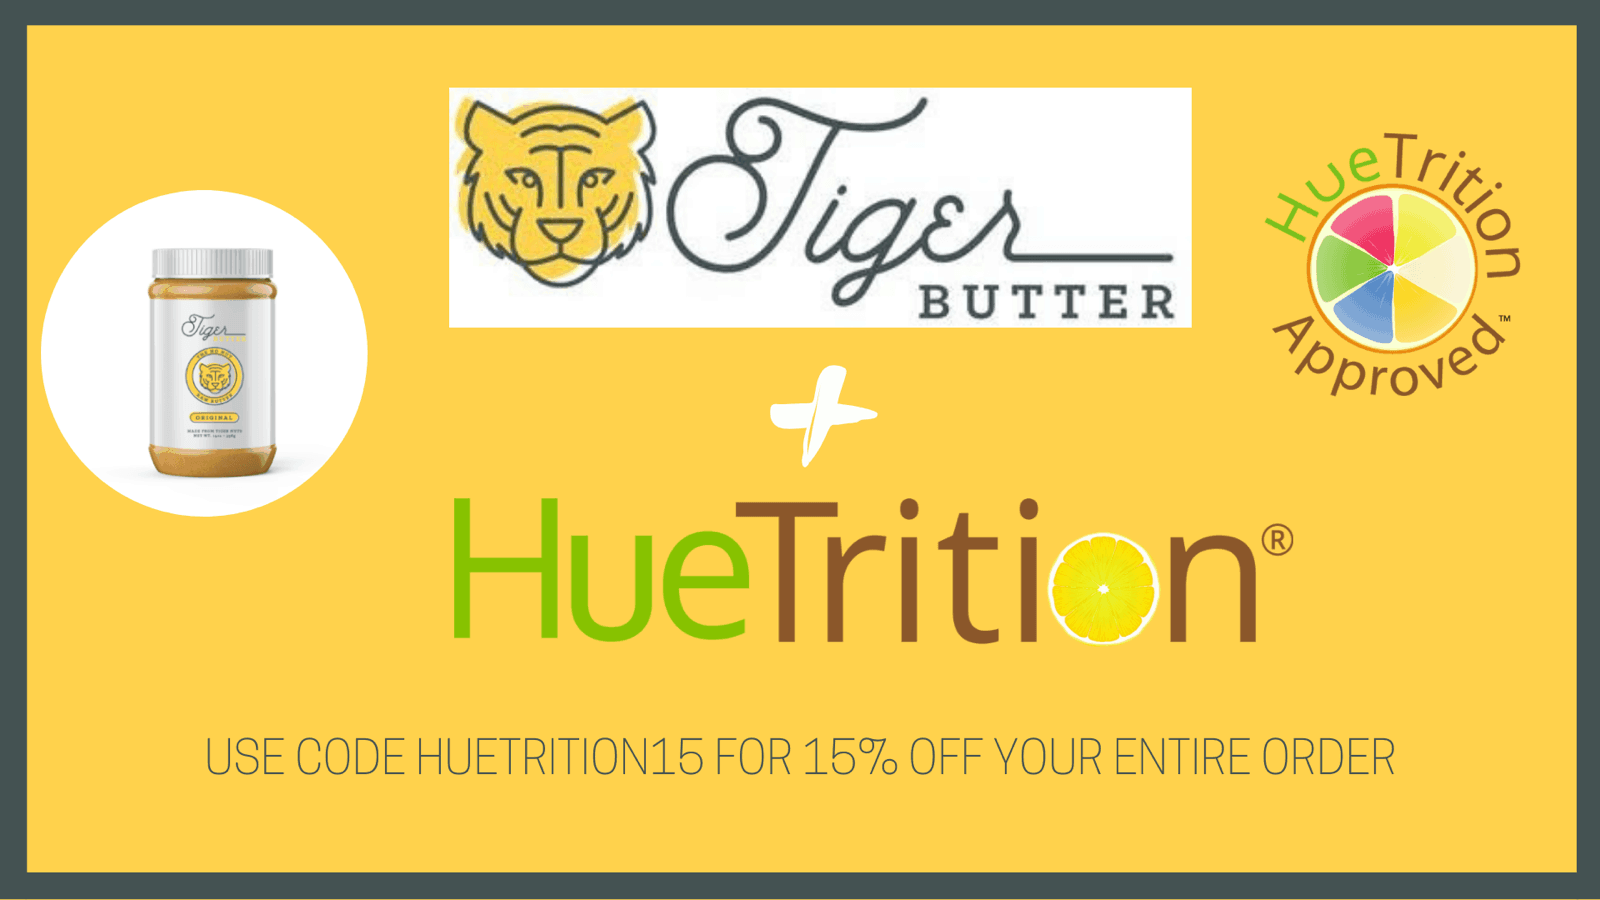 TIGER BUTTER HueTrition